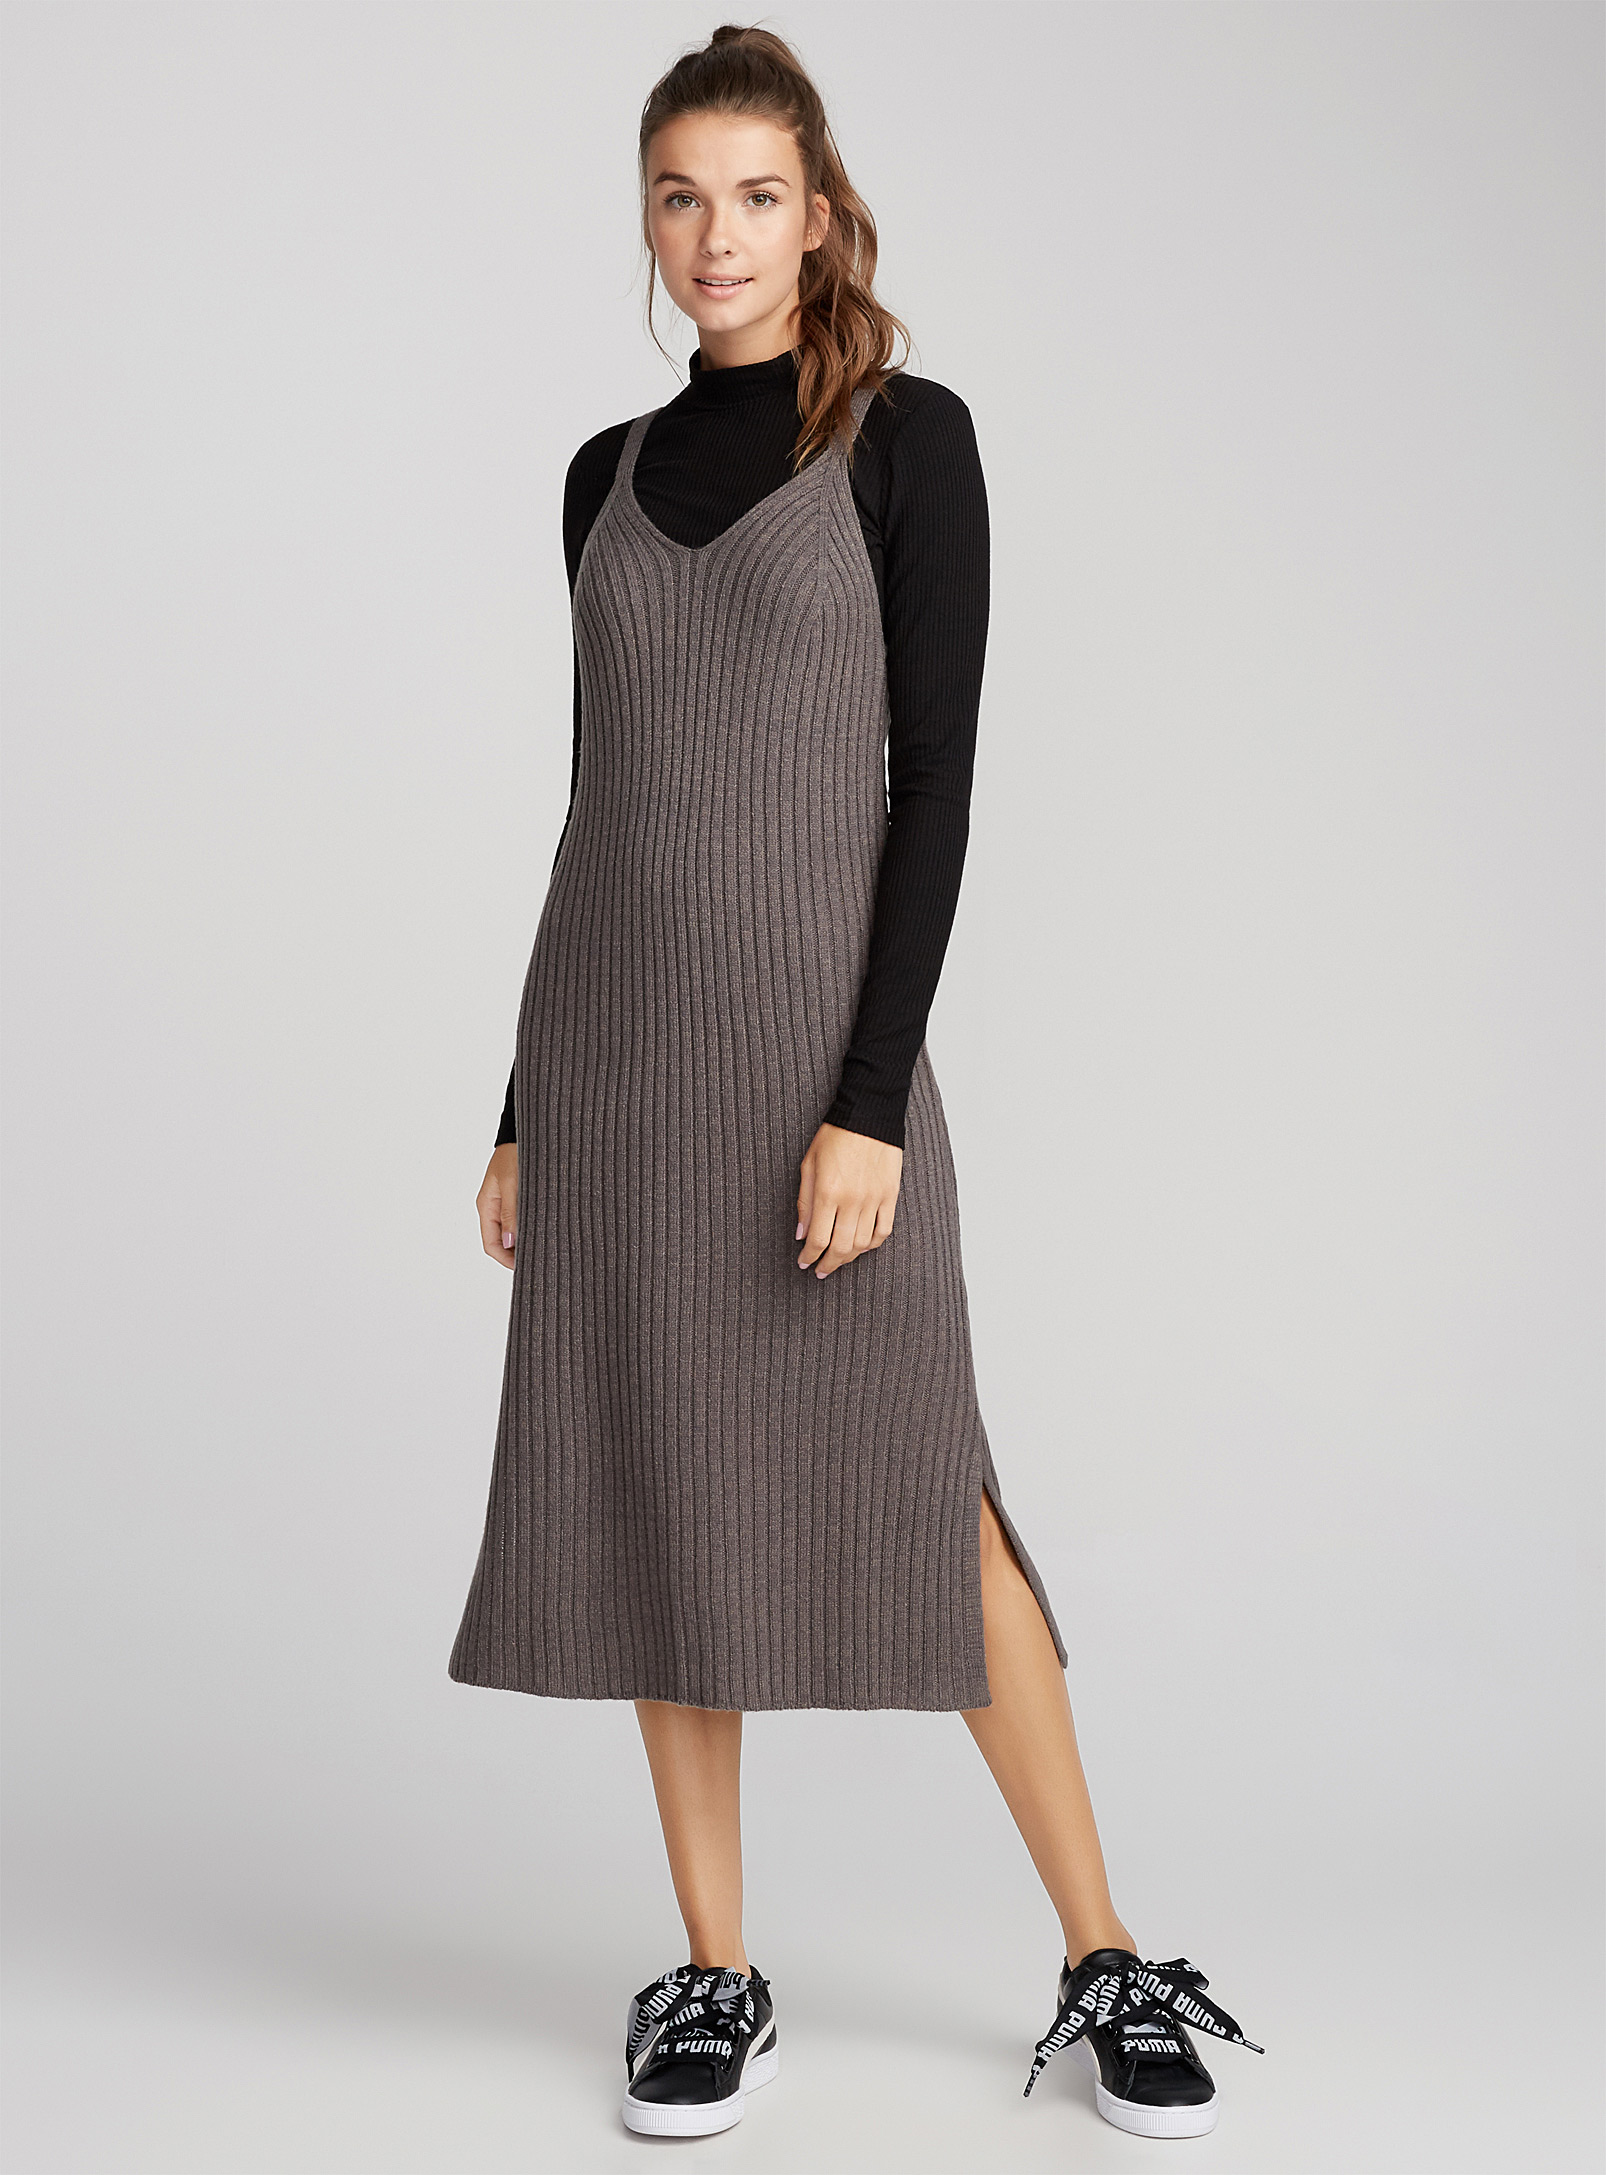 robe camisole tricot, simons